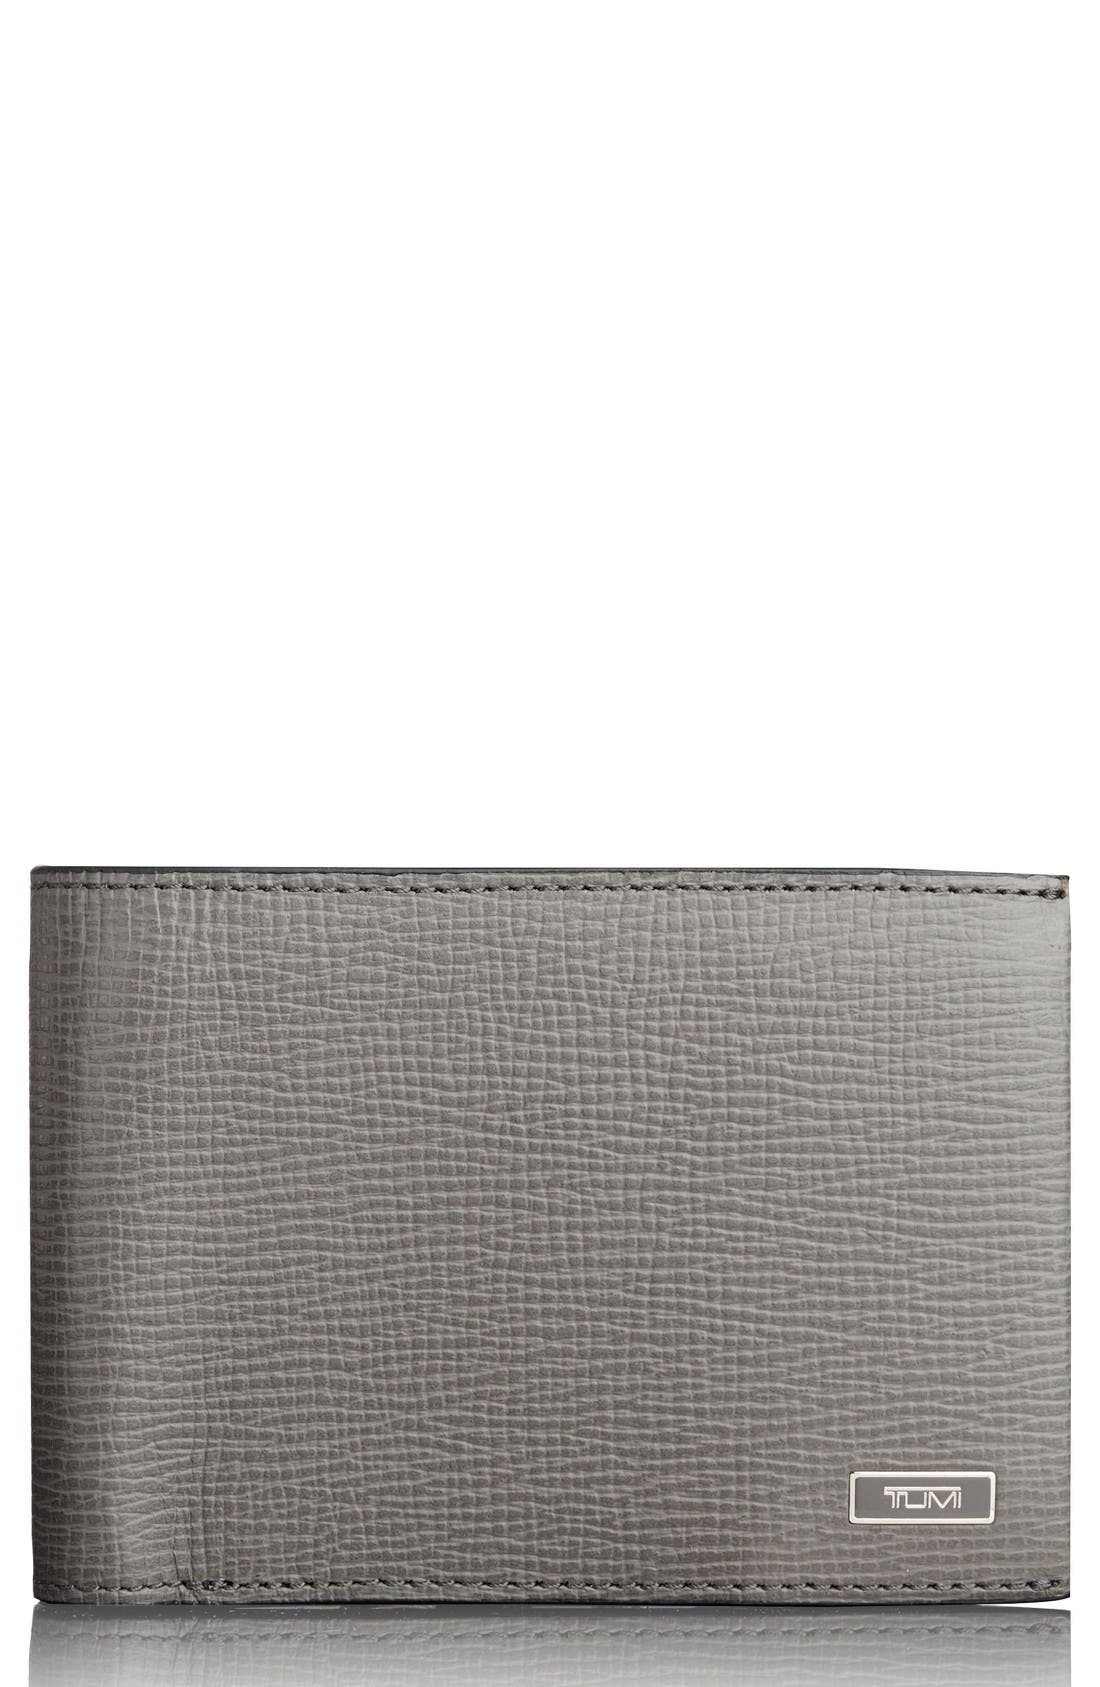 Tumi Monaco Leather RFID Wallet